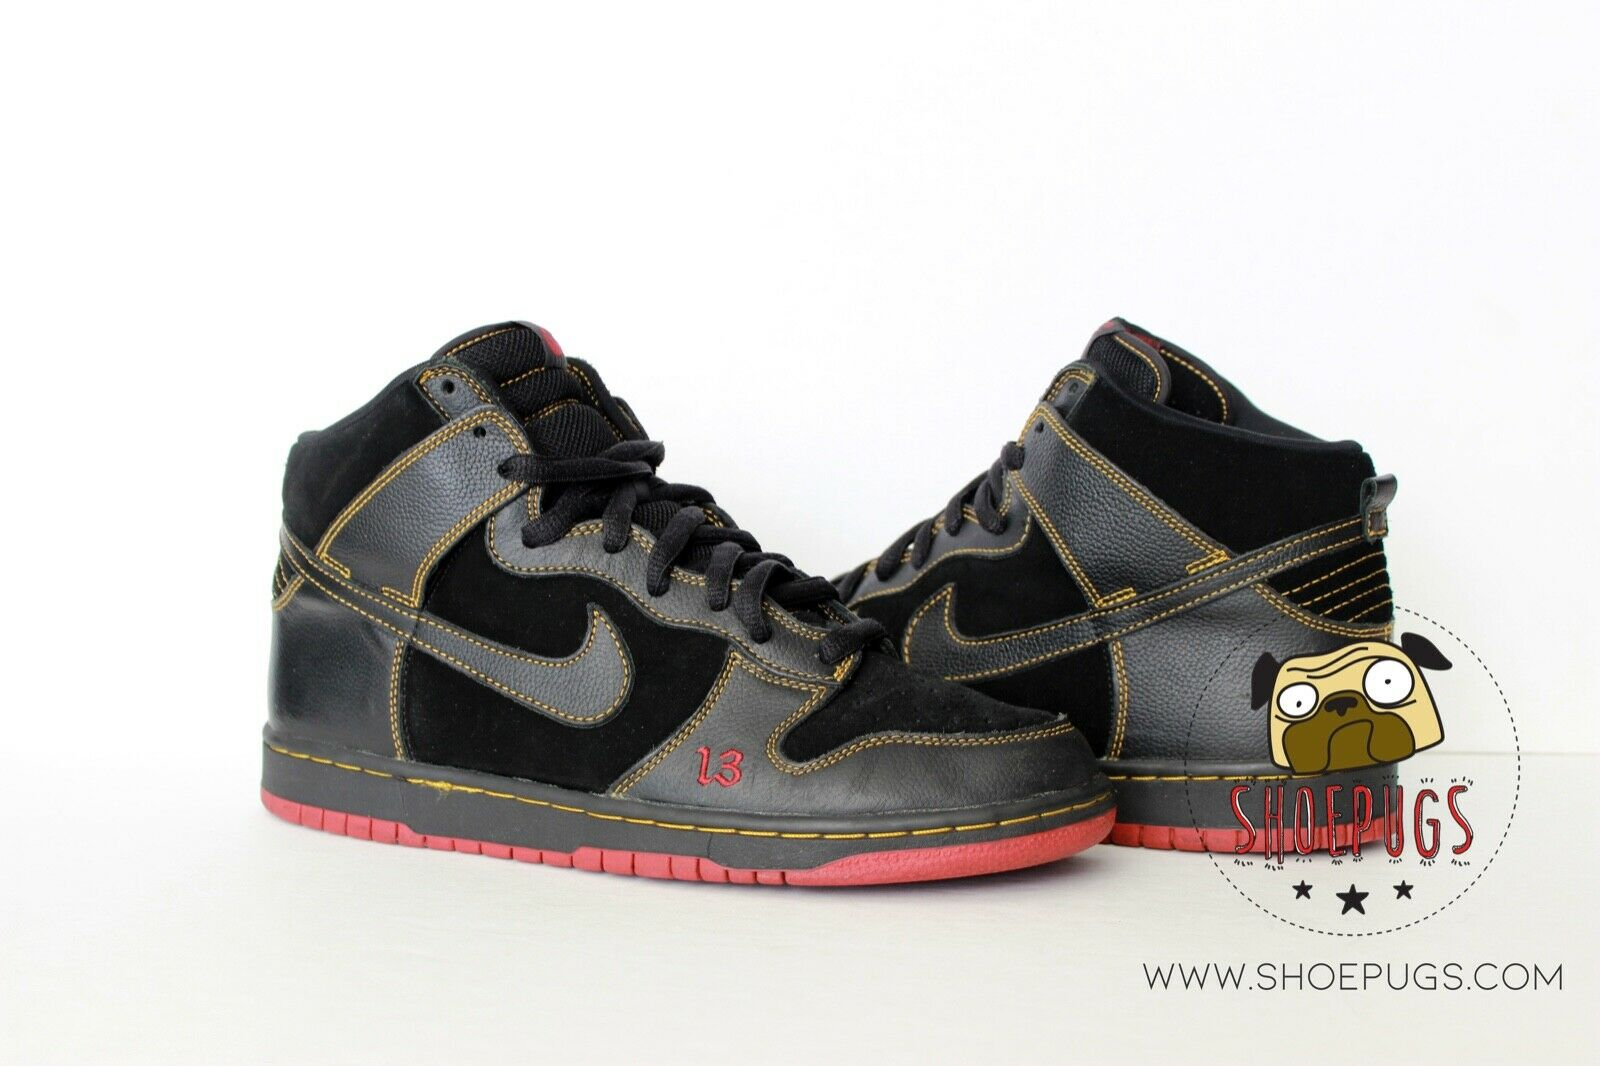 2004 Nike Dunk SB High Unlucky sz 10.5 w  Box black red used   TRUSTED SELLER